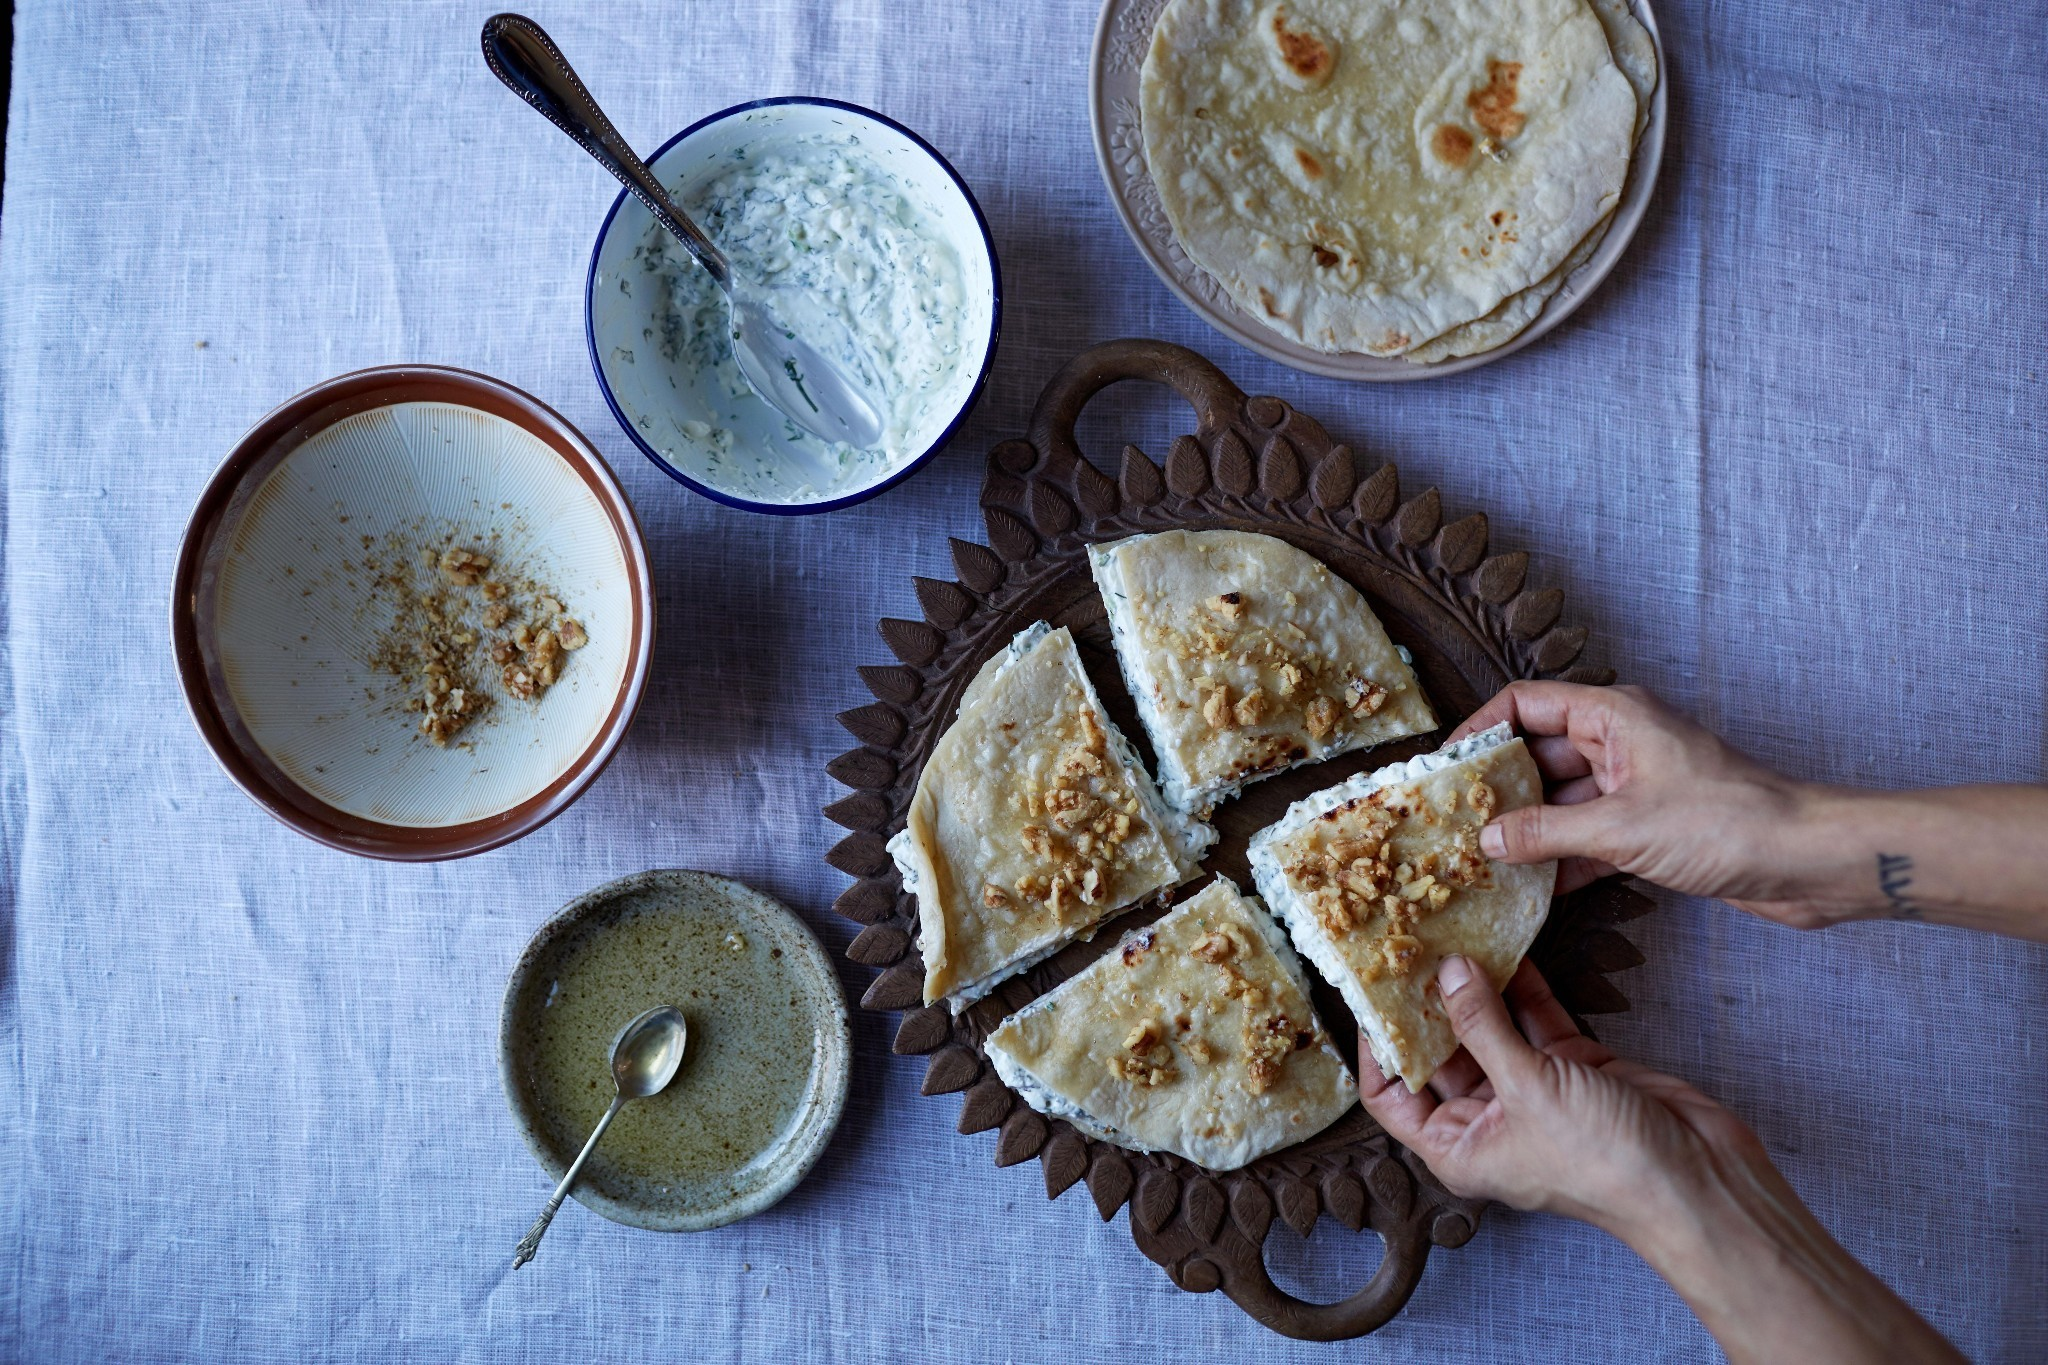 Recipes for spiced chicken and chapatis from Pakistan